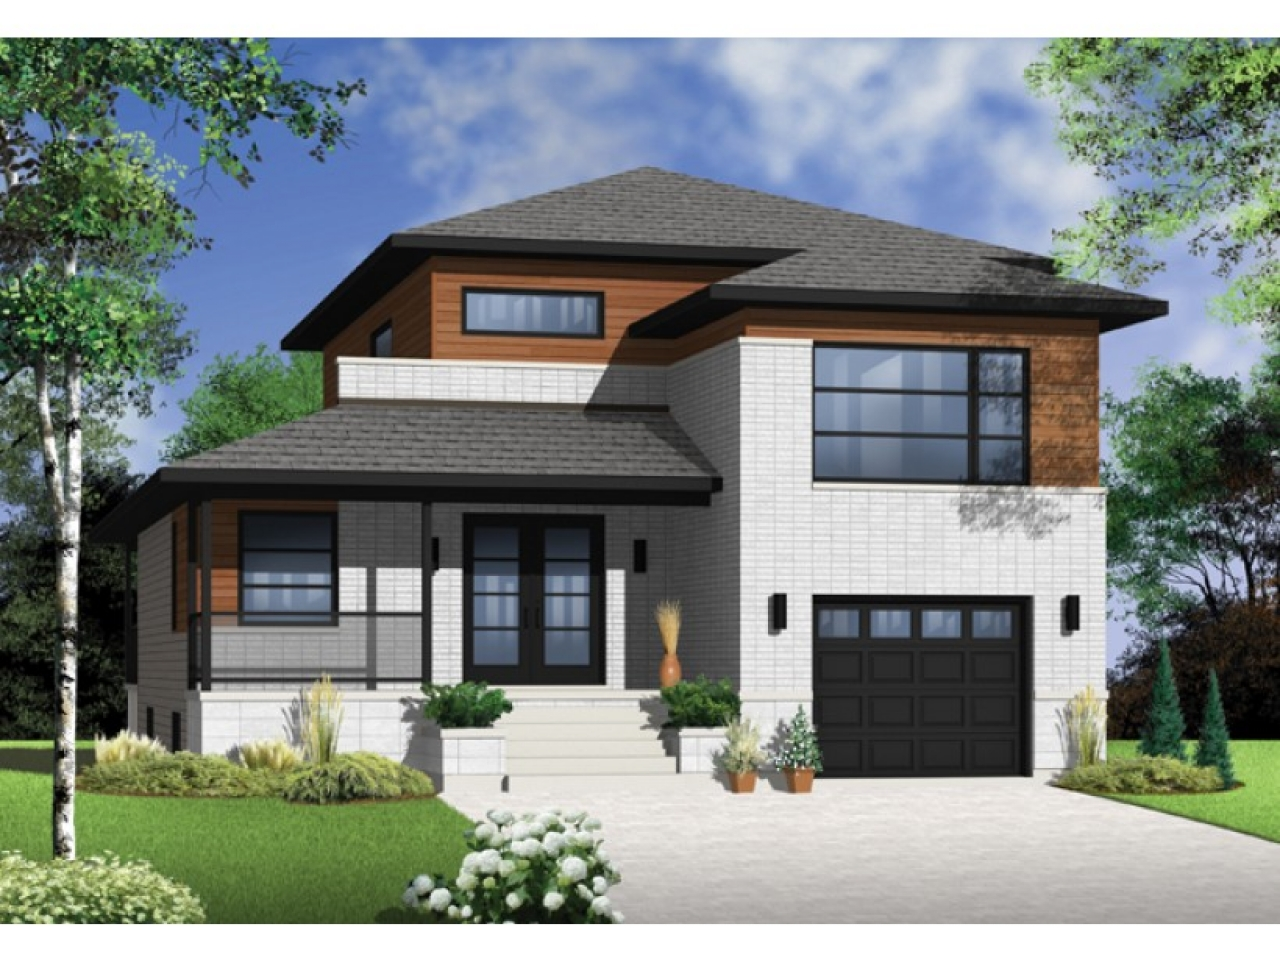 small narrow lot house plans narrow lot house plans with garage lrg ca47acc24965af0a - 33+ Small Narrow Lot House Plans Single Story PNG